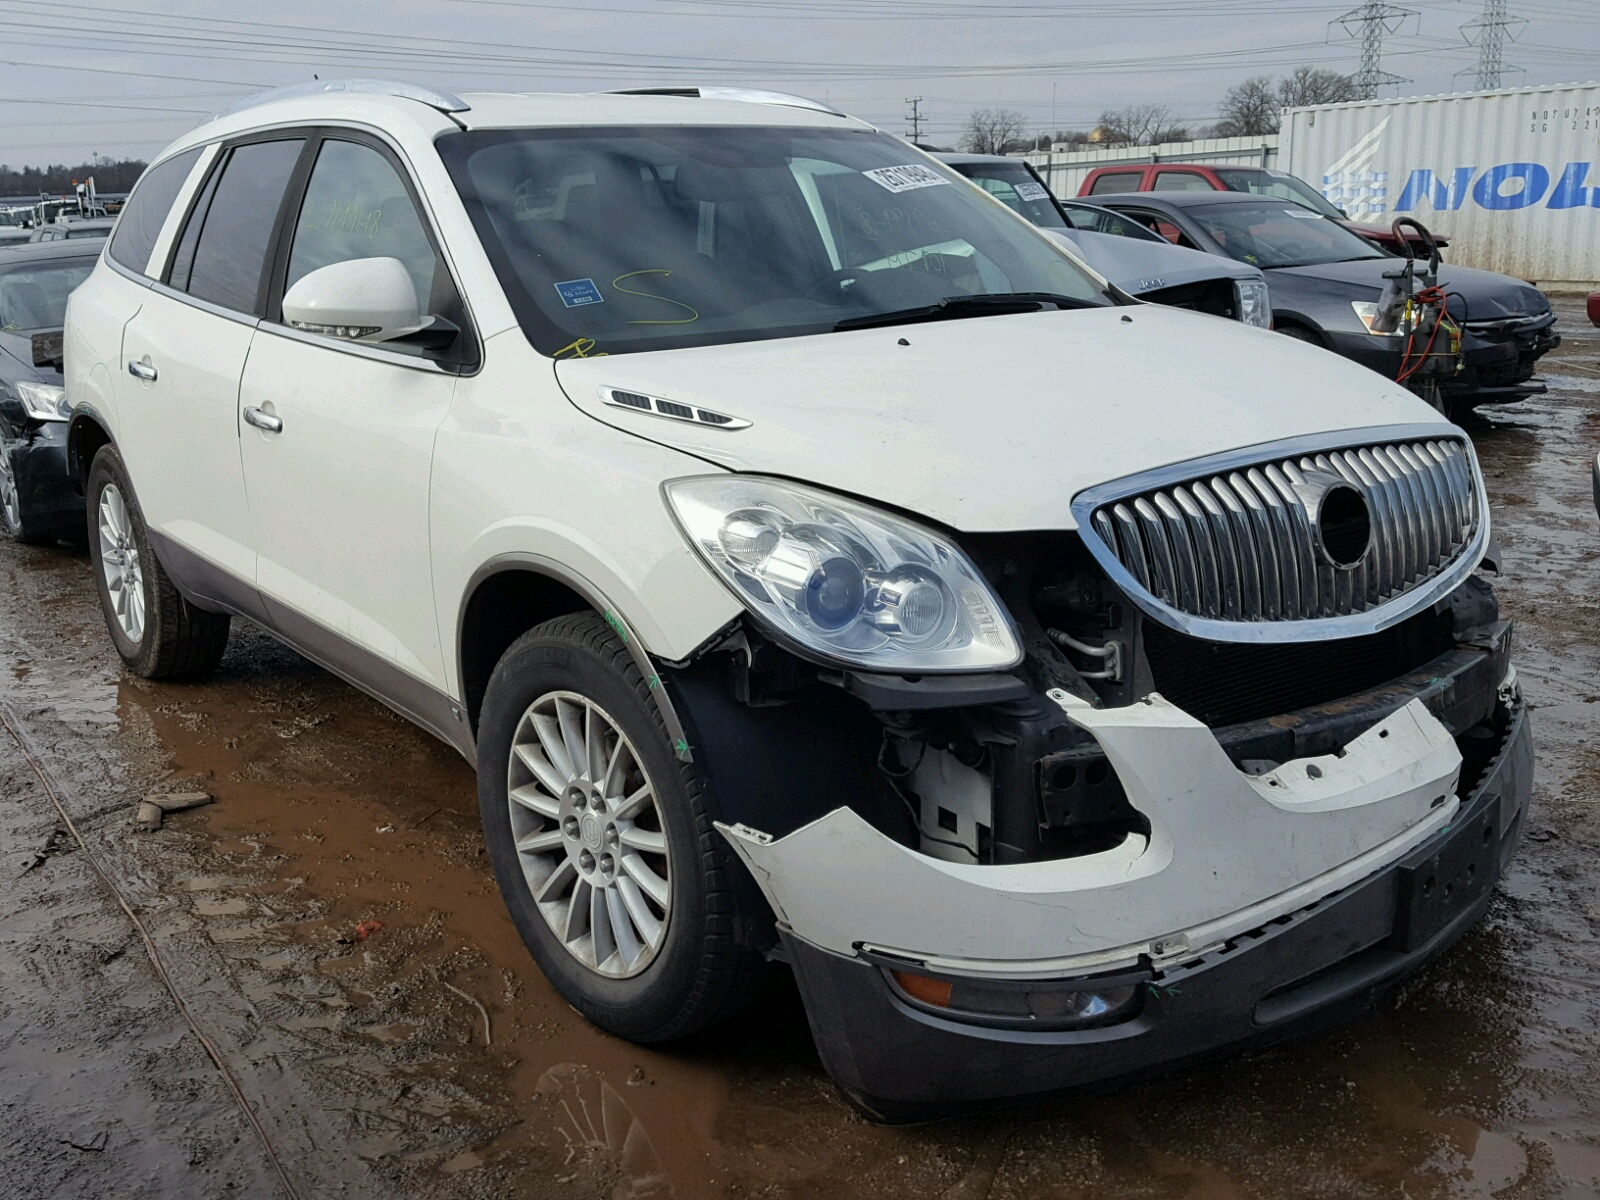 5galvbed4aj163317 2010 white buick enclave cx on sale in il 5galvbed4aj163317 2010 buick enclave cx 36l left view publicscrutiny Images